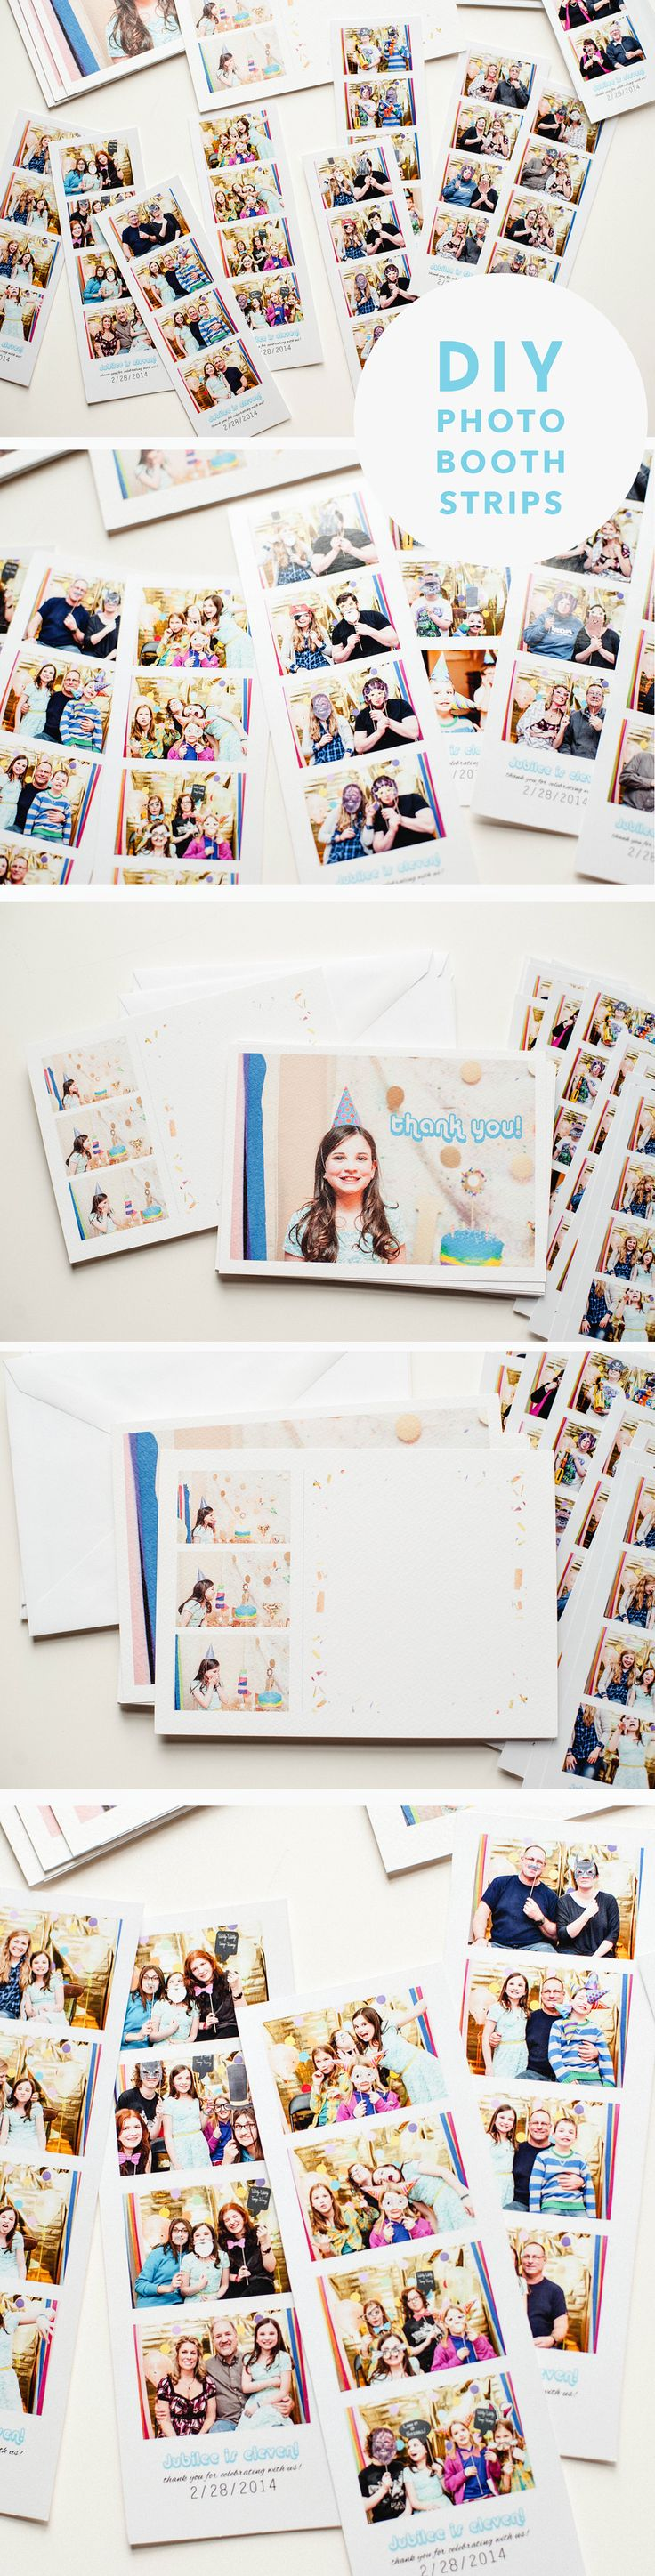 DIY Photo Booth Strips! Free Printable! www.jleeblog.com